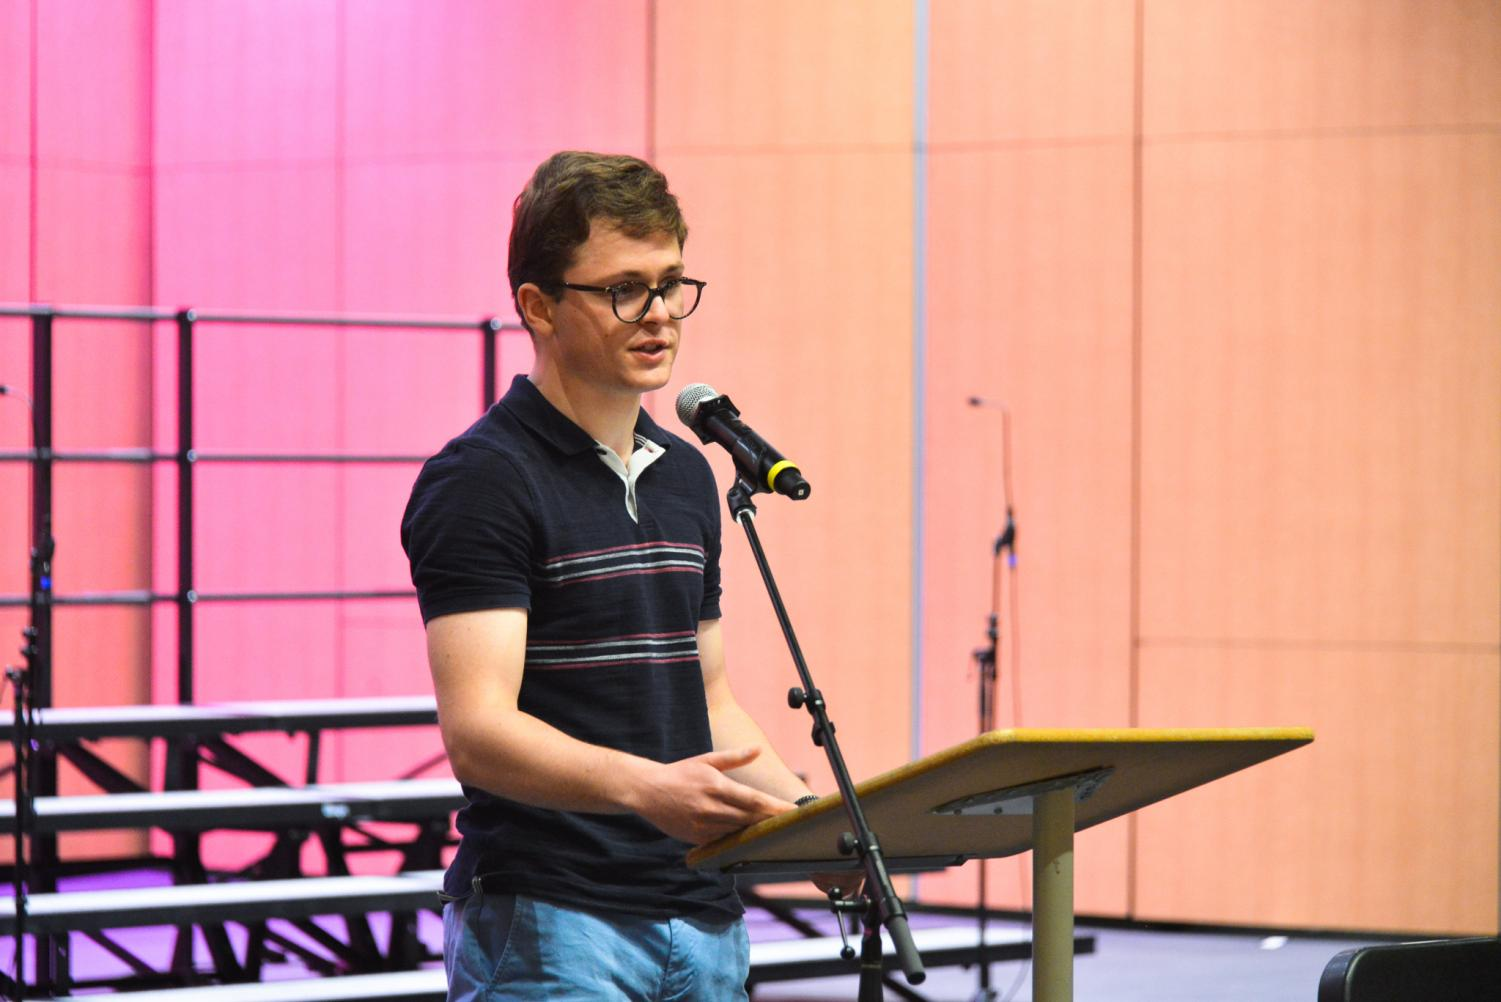 Thomas Rainow (11) delivers his speech as a candidate for his class's senior council. Several candidates from each class ran for class council this year, with a record number of 28 candidates running for next year's junior class council.